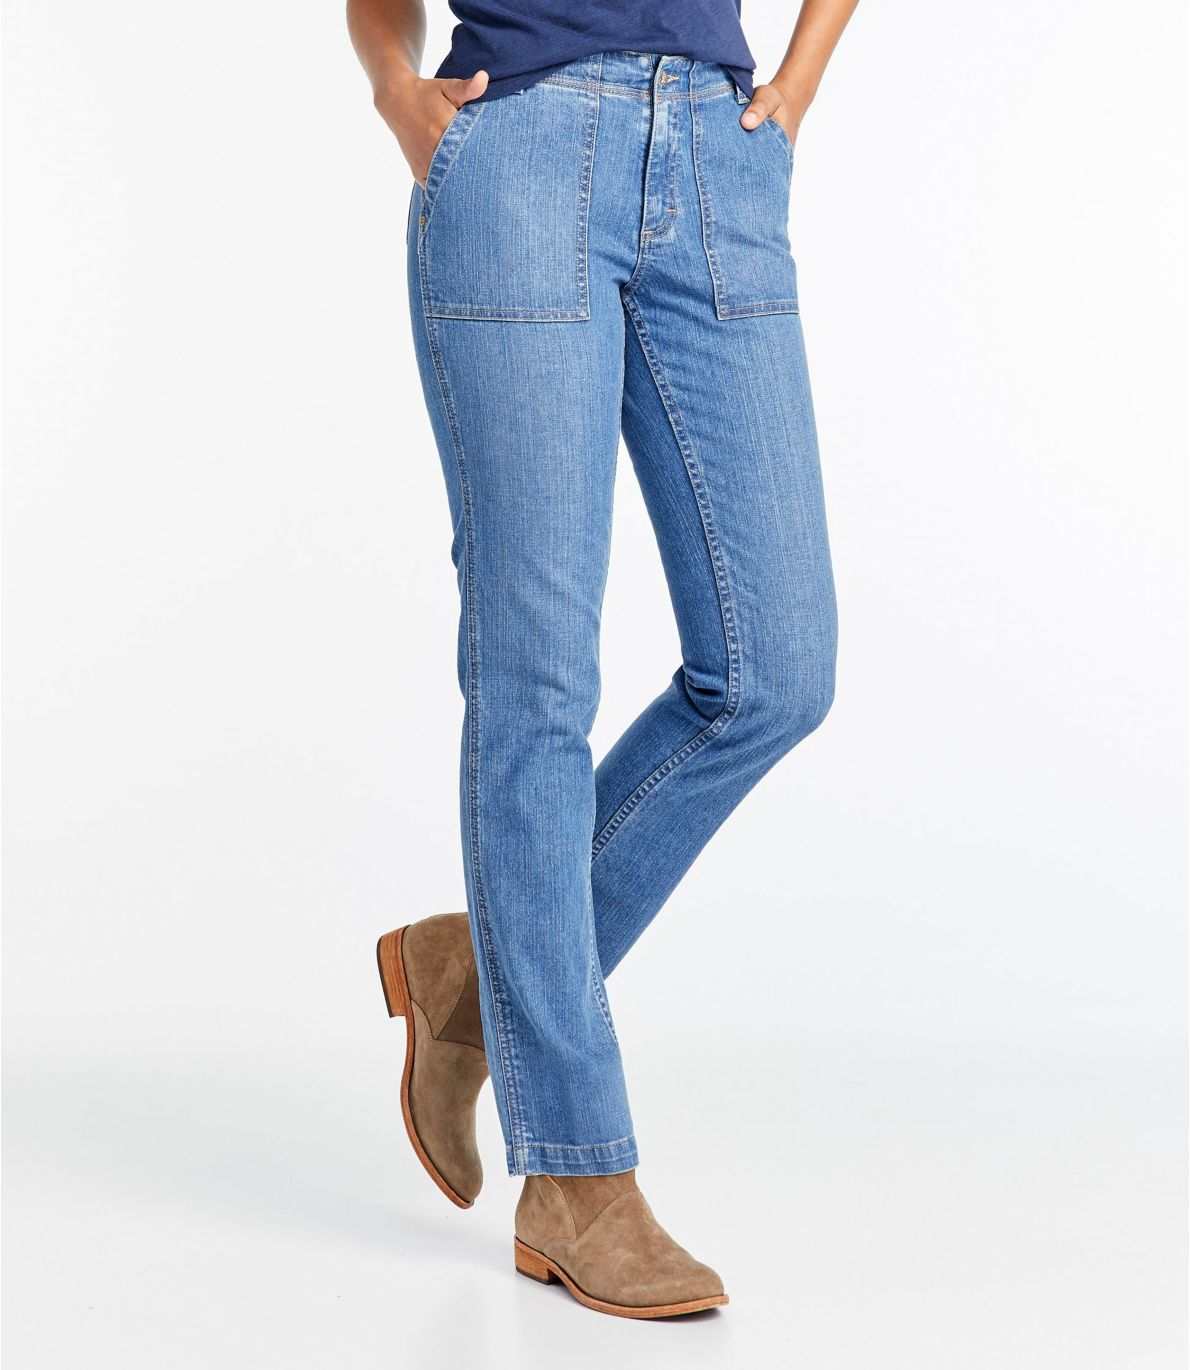 Women's 1912 Jeans, Favorite Fit Utility